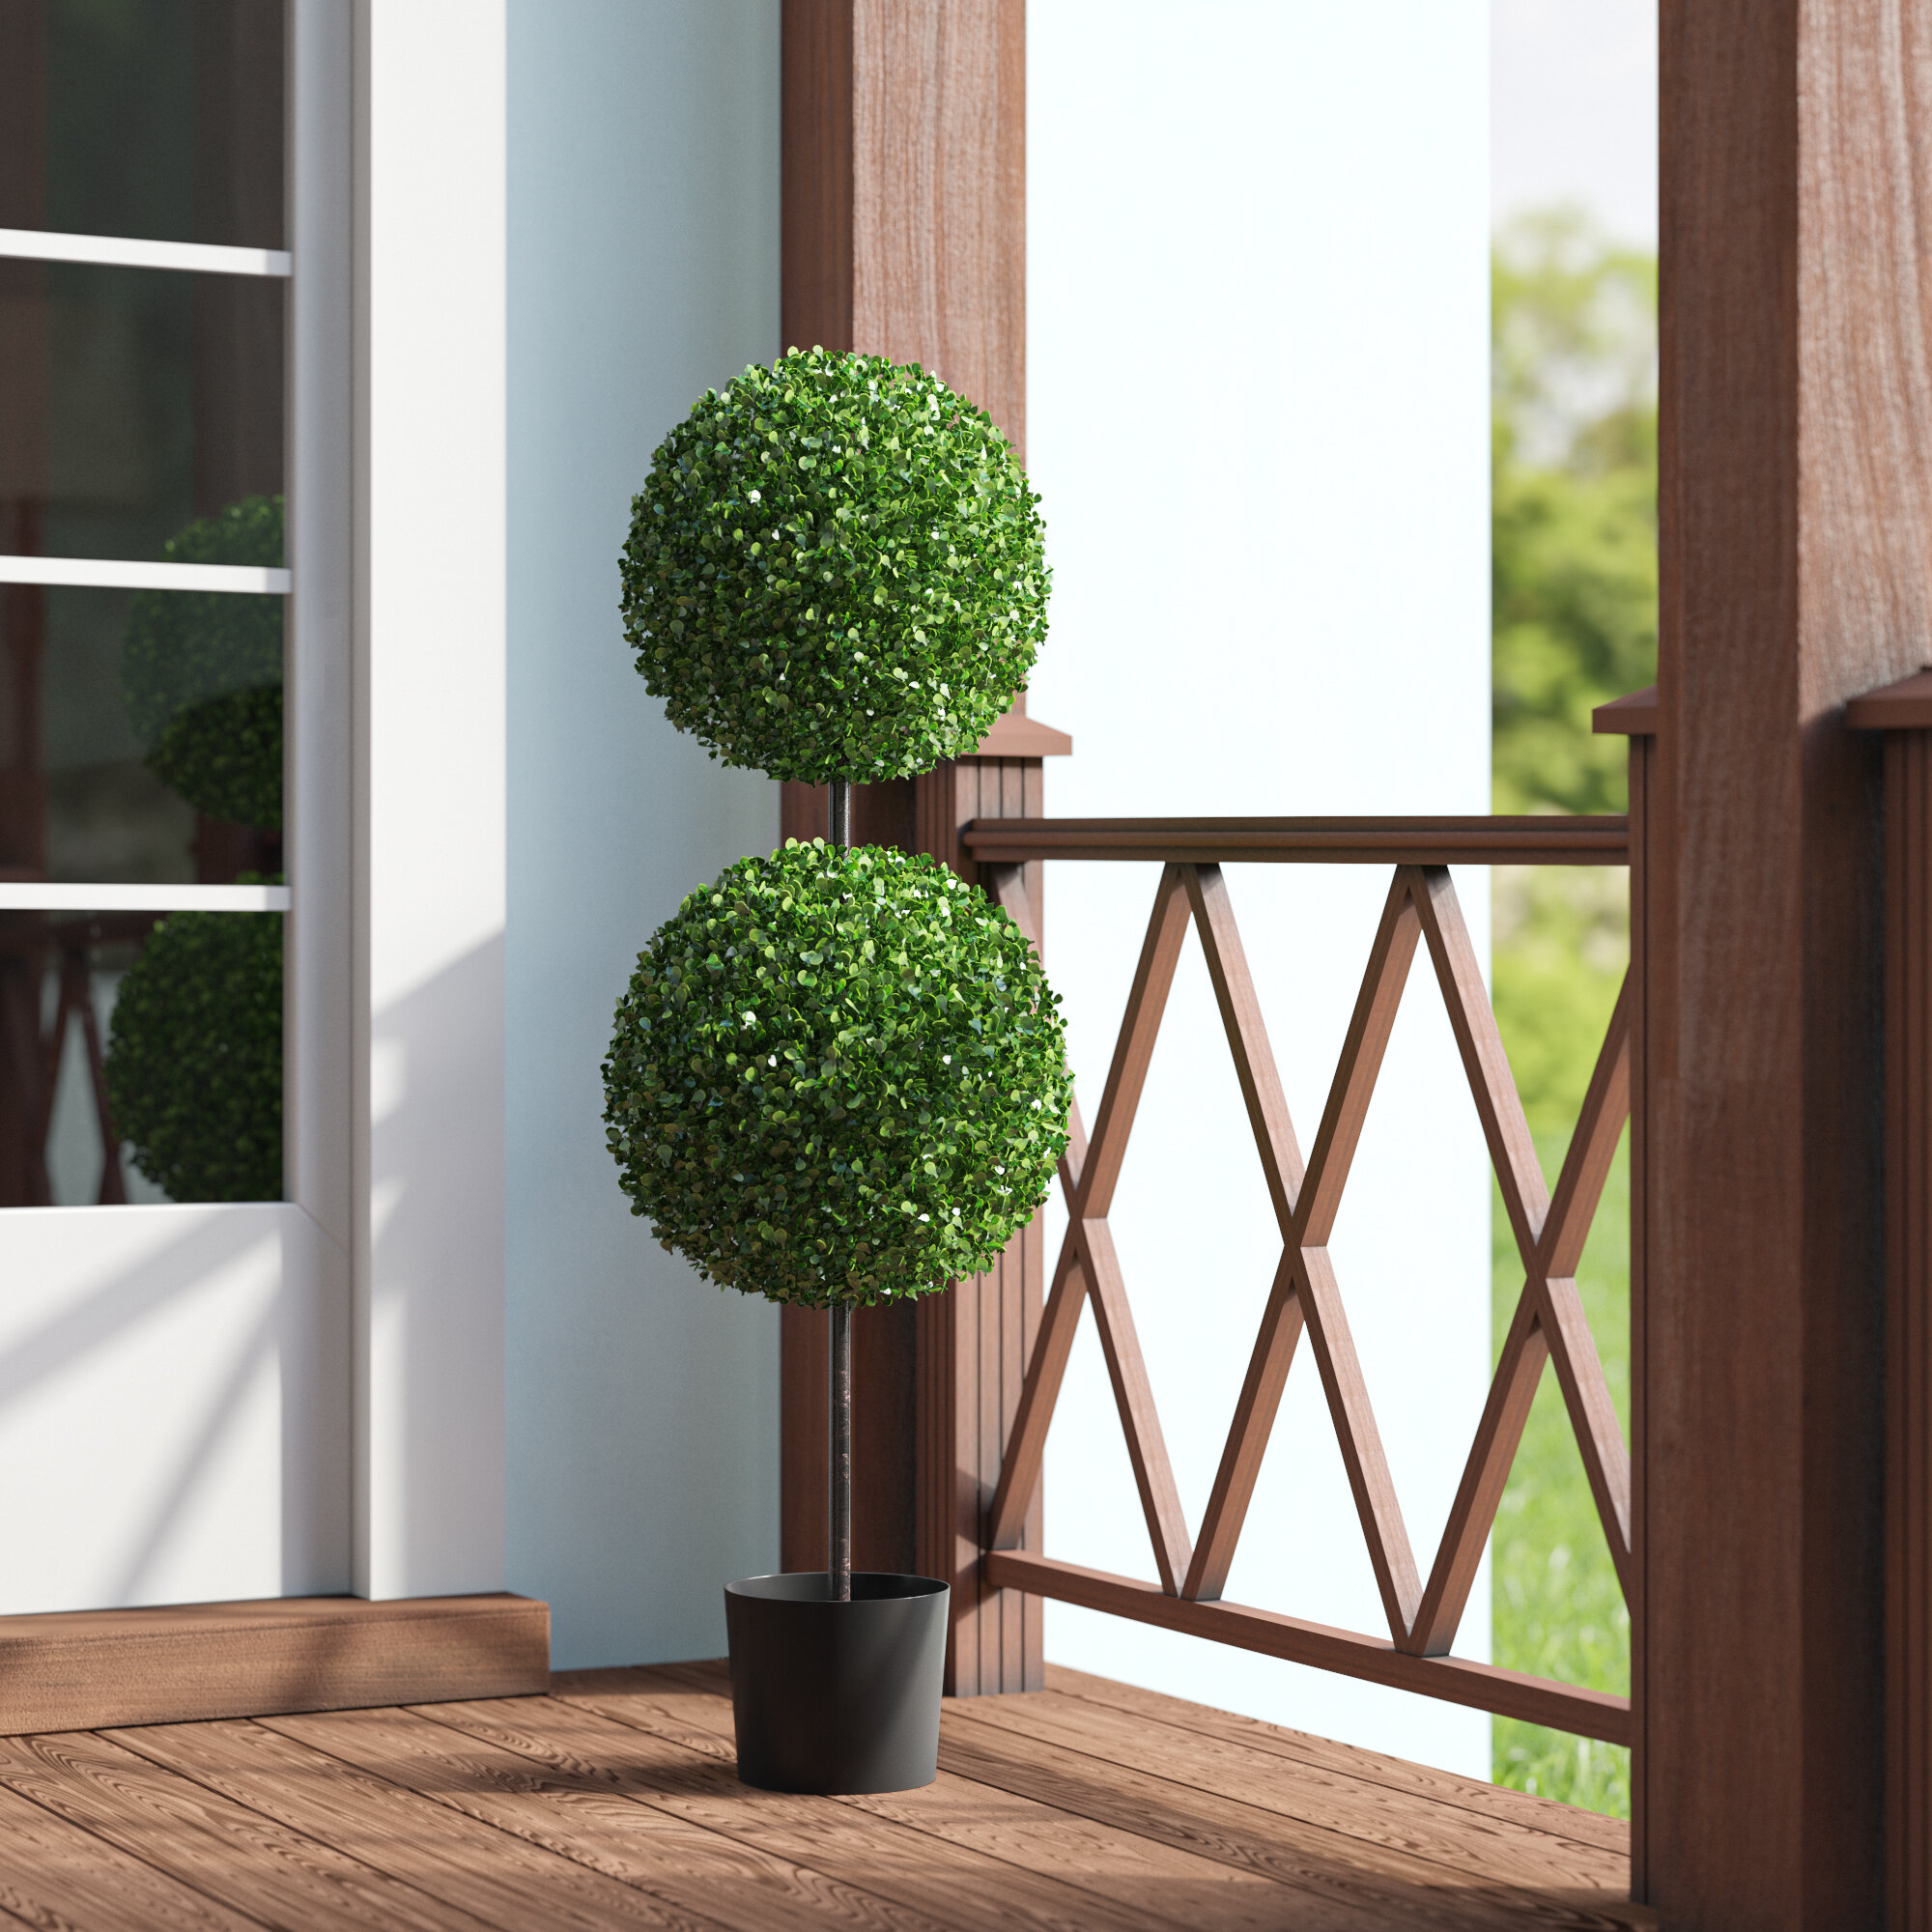 Darby Home Co Double Ball Boxwood Topiary In Planter Reviews Wayfair